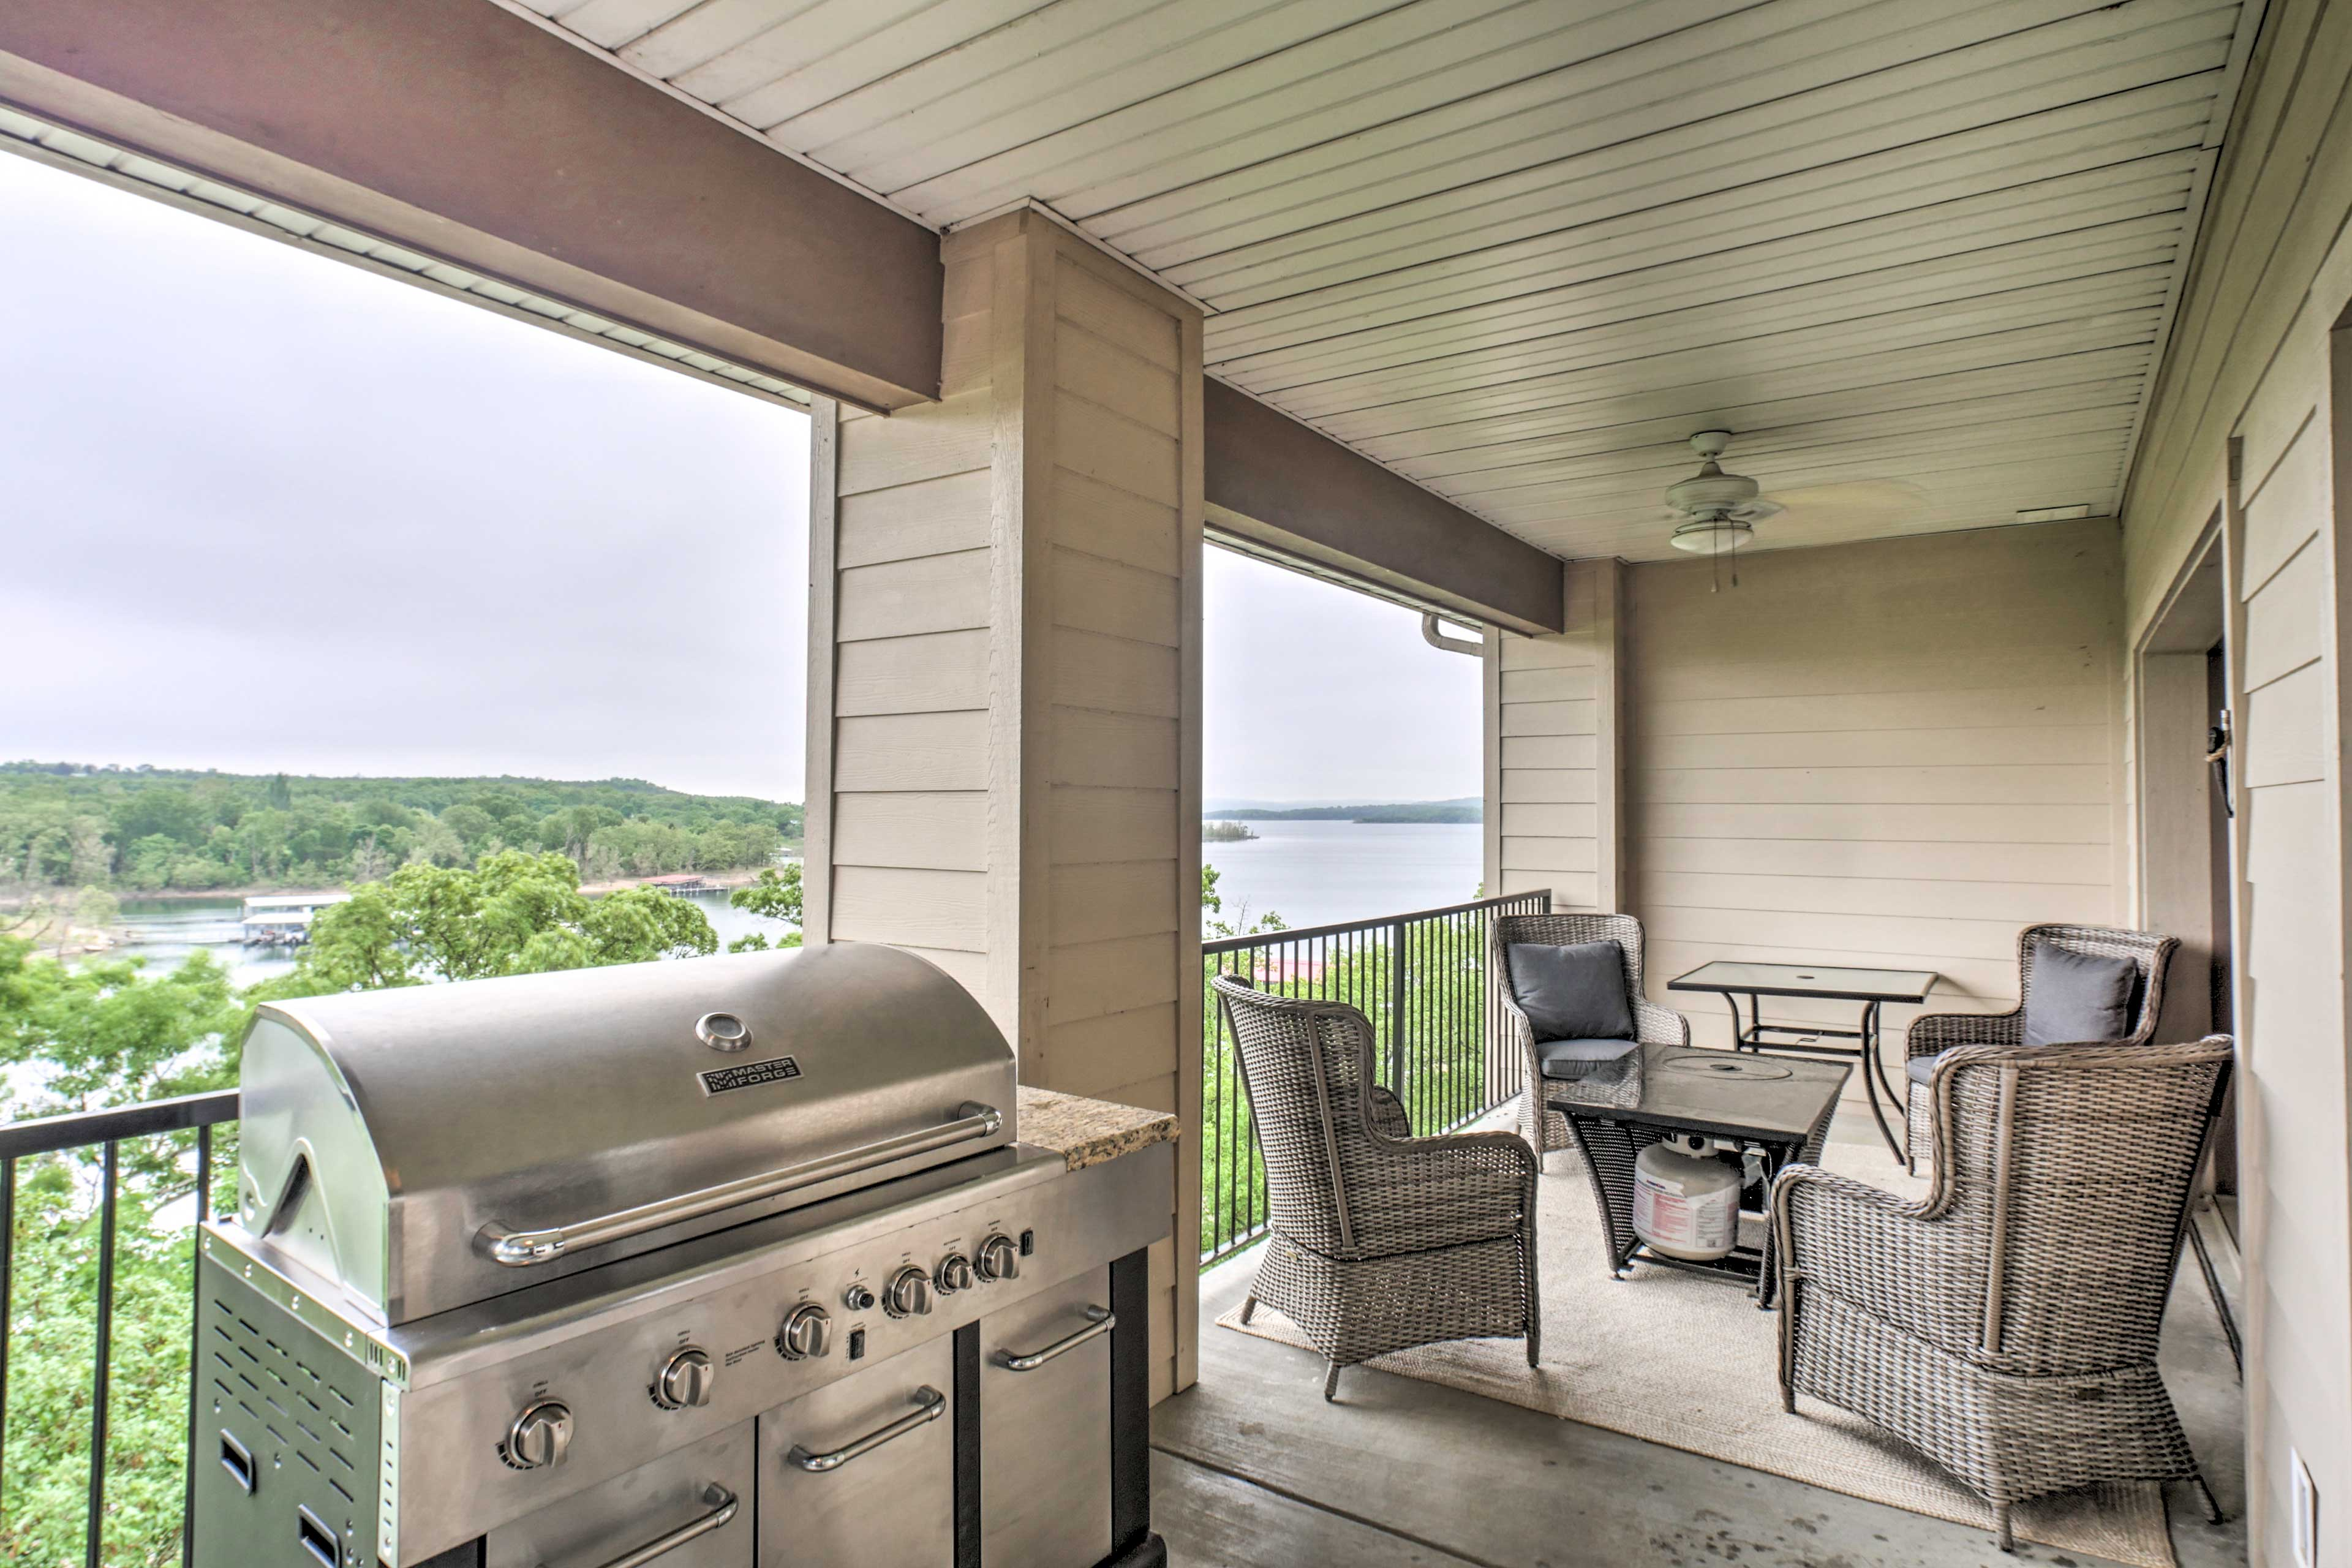 Bring the group to the covered balcony and enjoy a cookout on the gas grill.